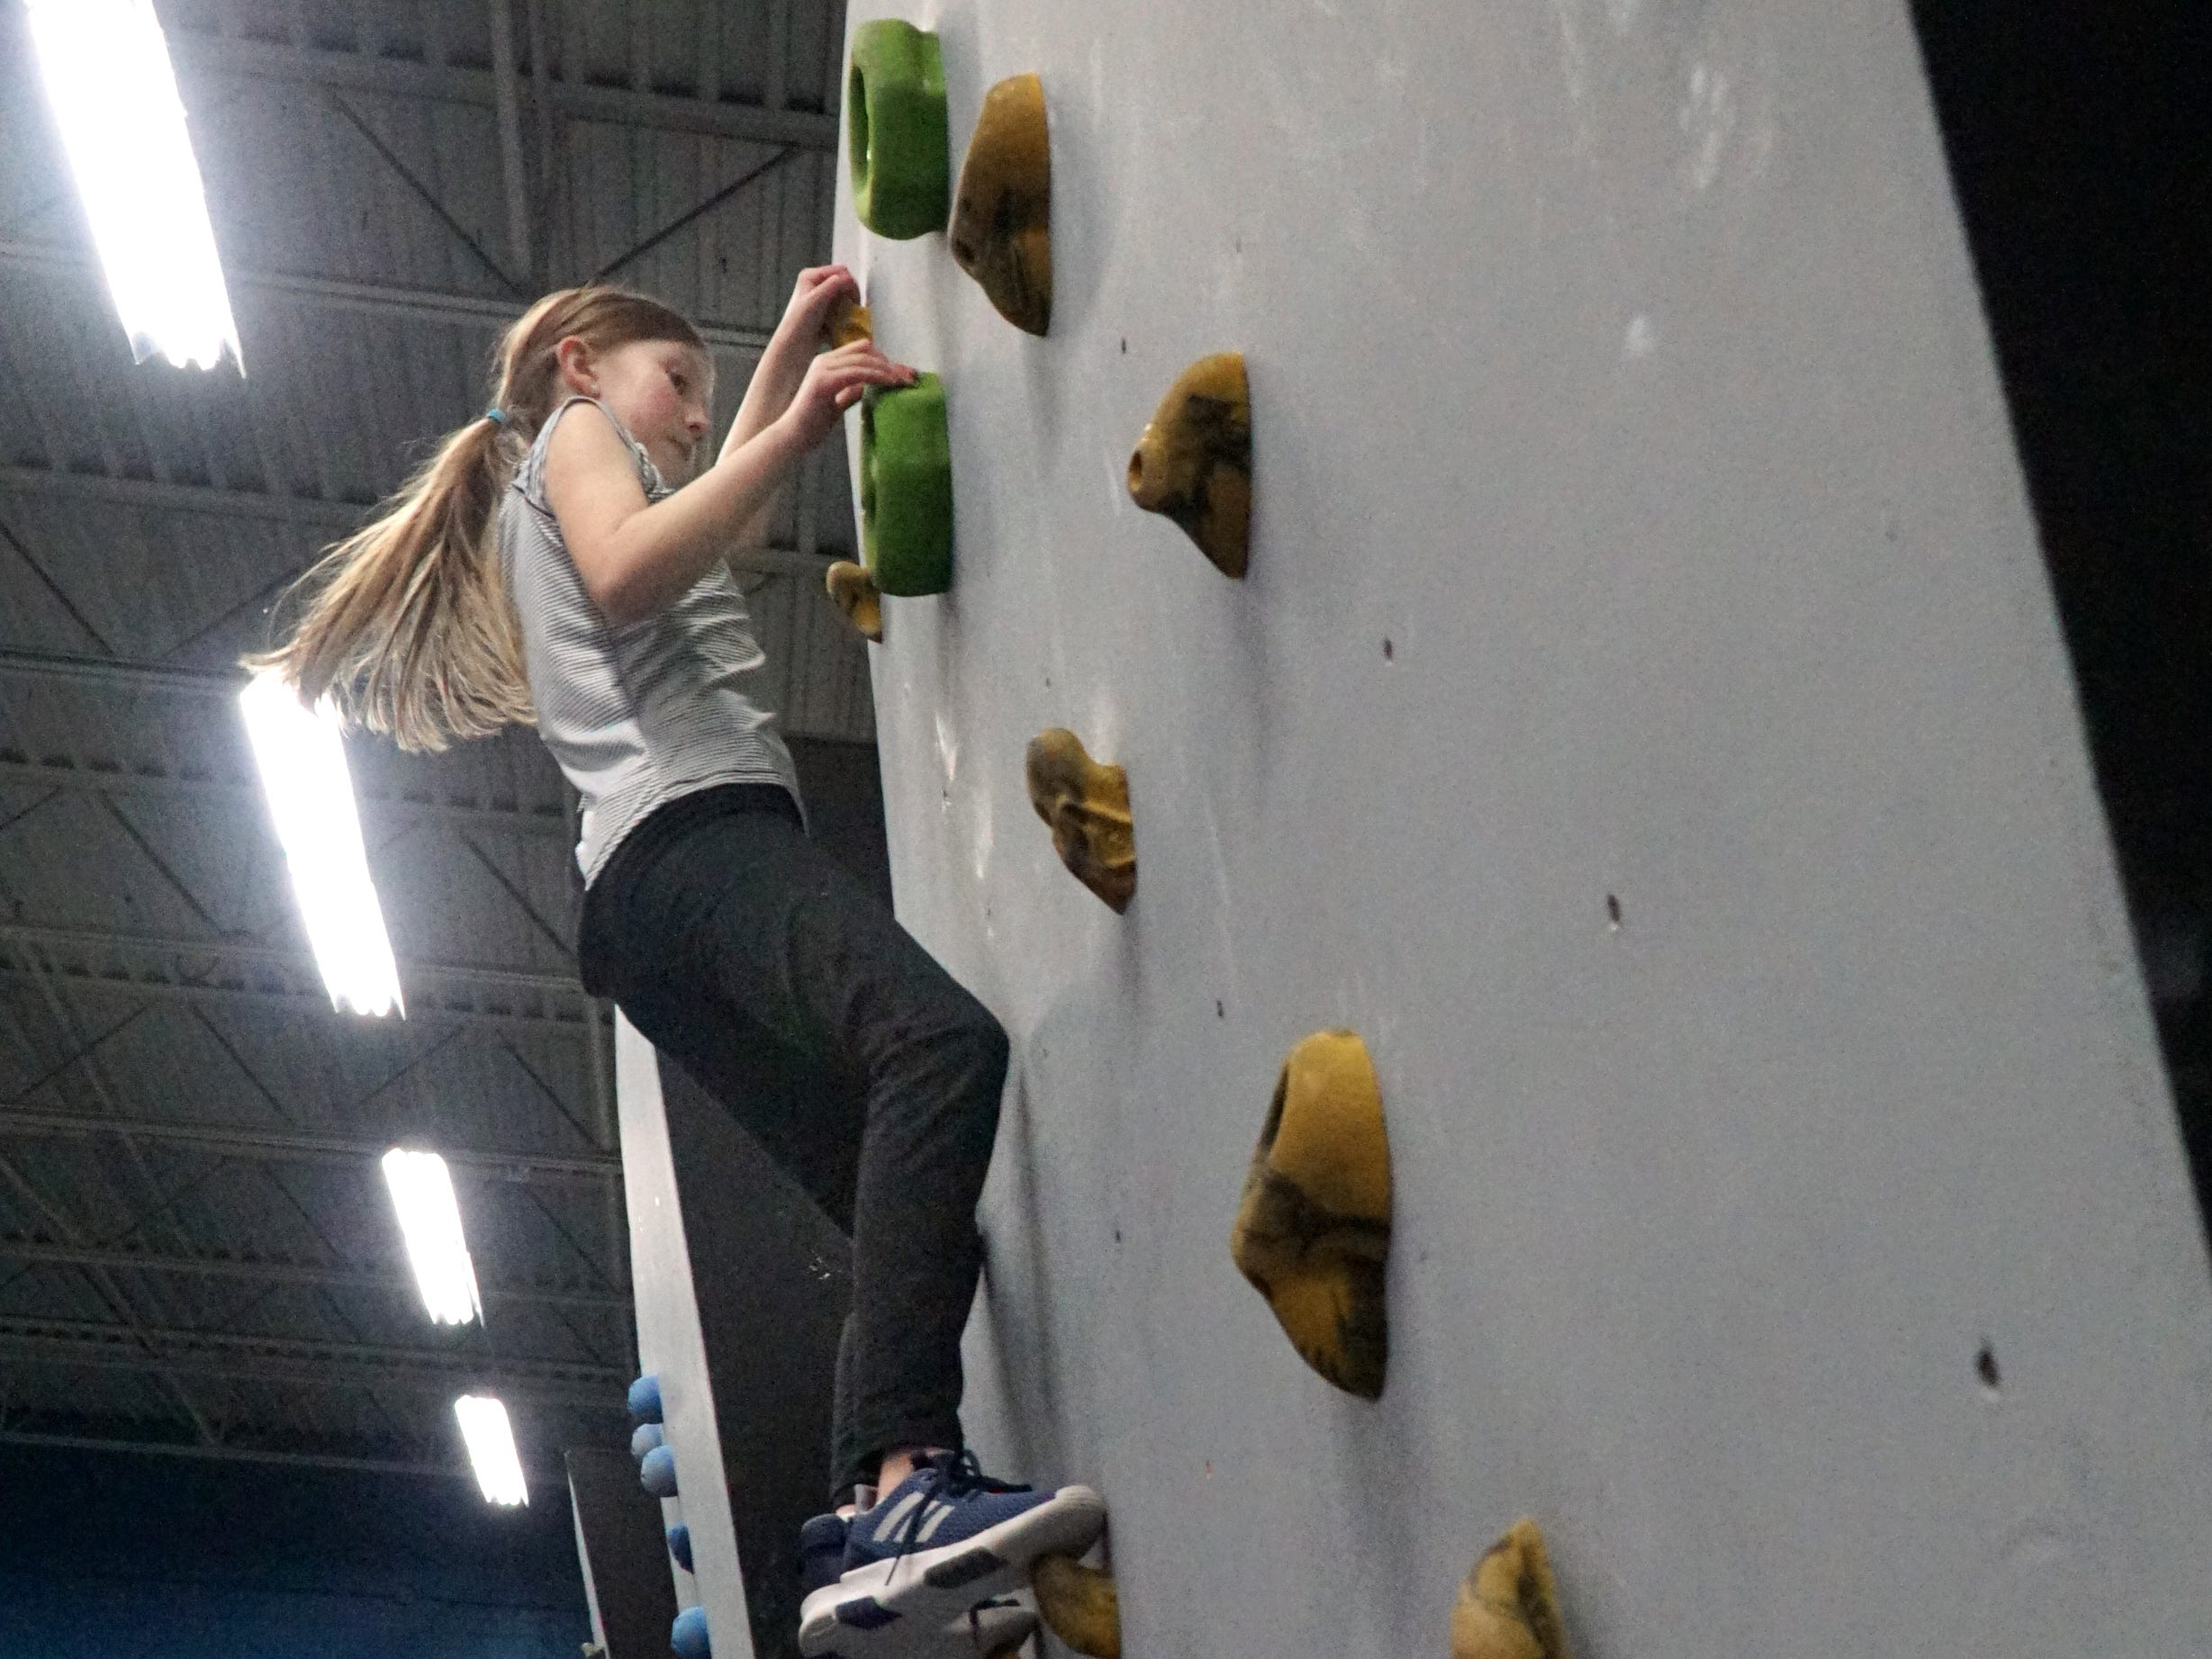 Fallon Stover, 9, ascends a climbing wall at Plymouth's The Edge Training Center on March 13, 2019. Stover and a group of youngsters were there that night to continue training on an obstacle-strength course inside the Plymouth businesses' gym.